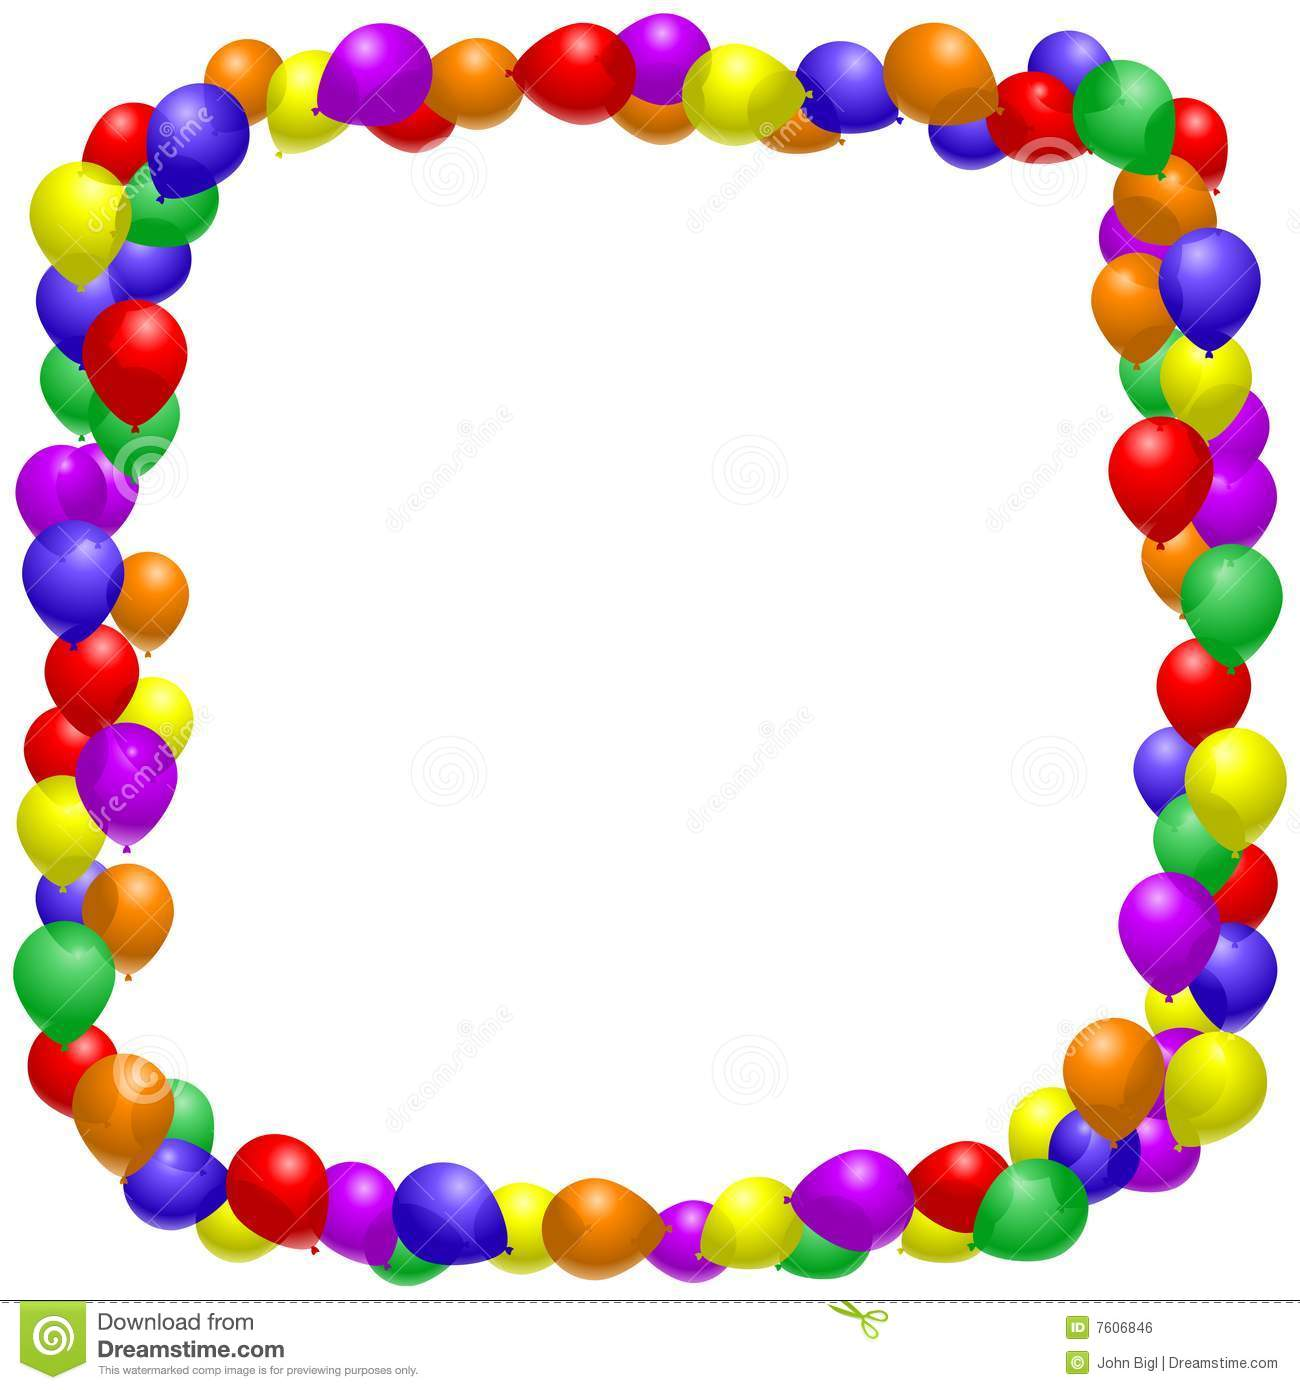 balloon frame royalty free stock image